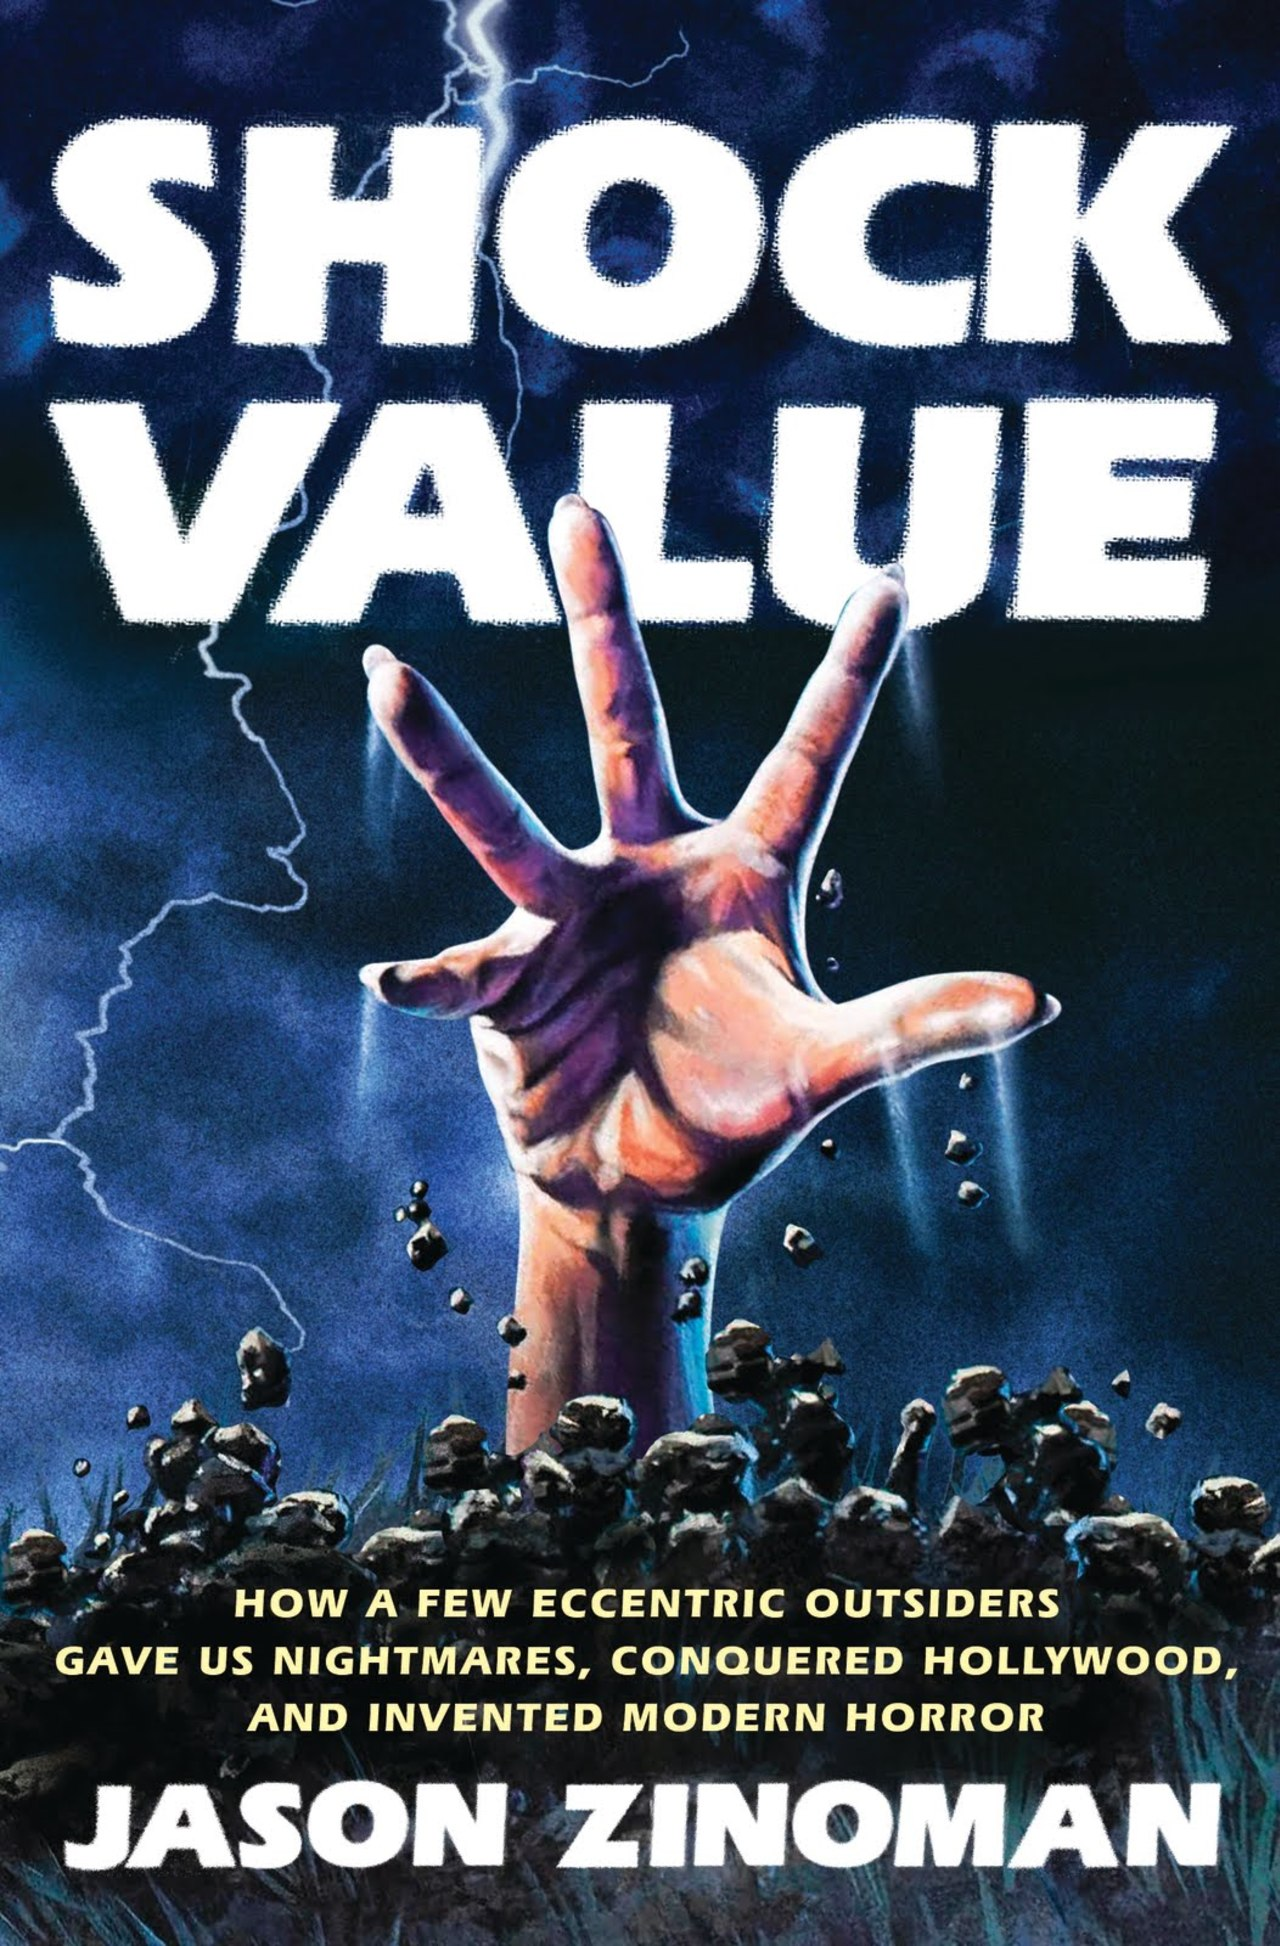 SHOCK VALUE: HOW A FEW ECCENTRIC OUTSIDERS GAVE US NIGHTMARES, CONQUERED HOLLYWOOD, AND INVENTED MODERN HORROR, by Jason Zinoman